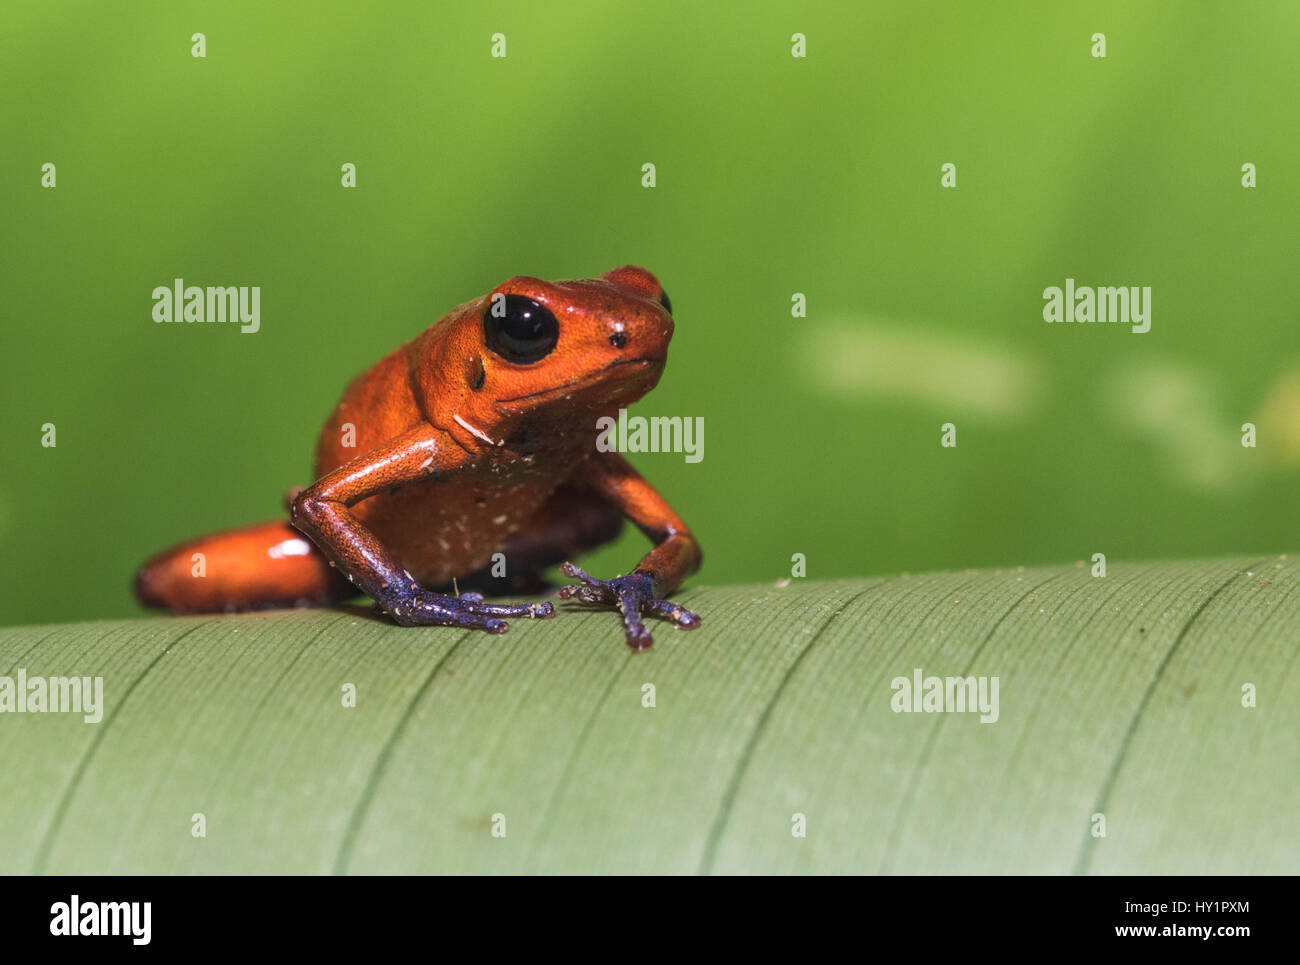 Blue-jeans Frog or Strawberry Poison-dart Frog, Dendrobates pumilio, sitting on a green banan leaf in rainforest - Stock Image